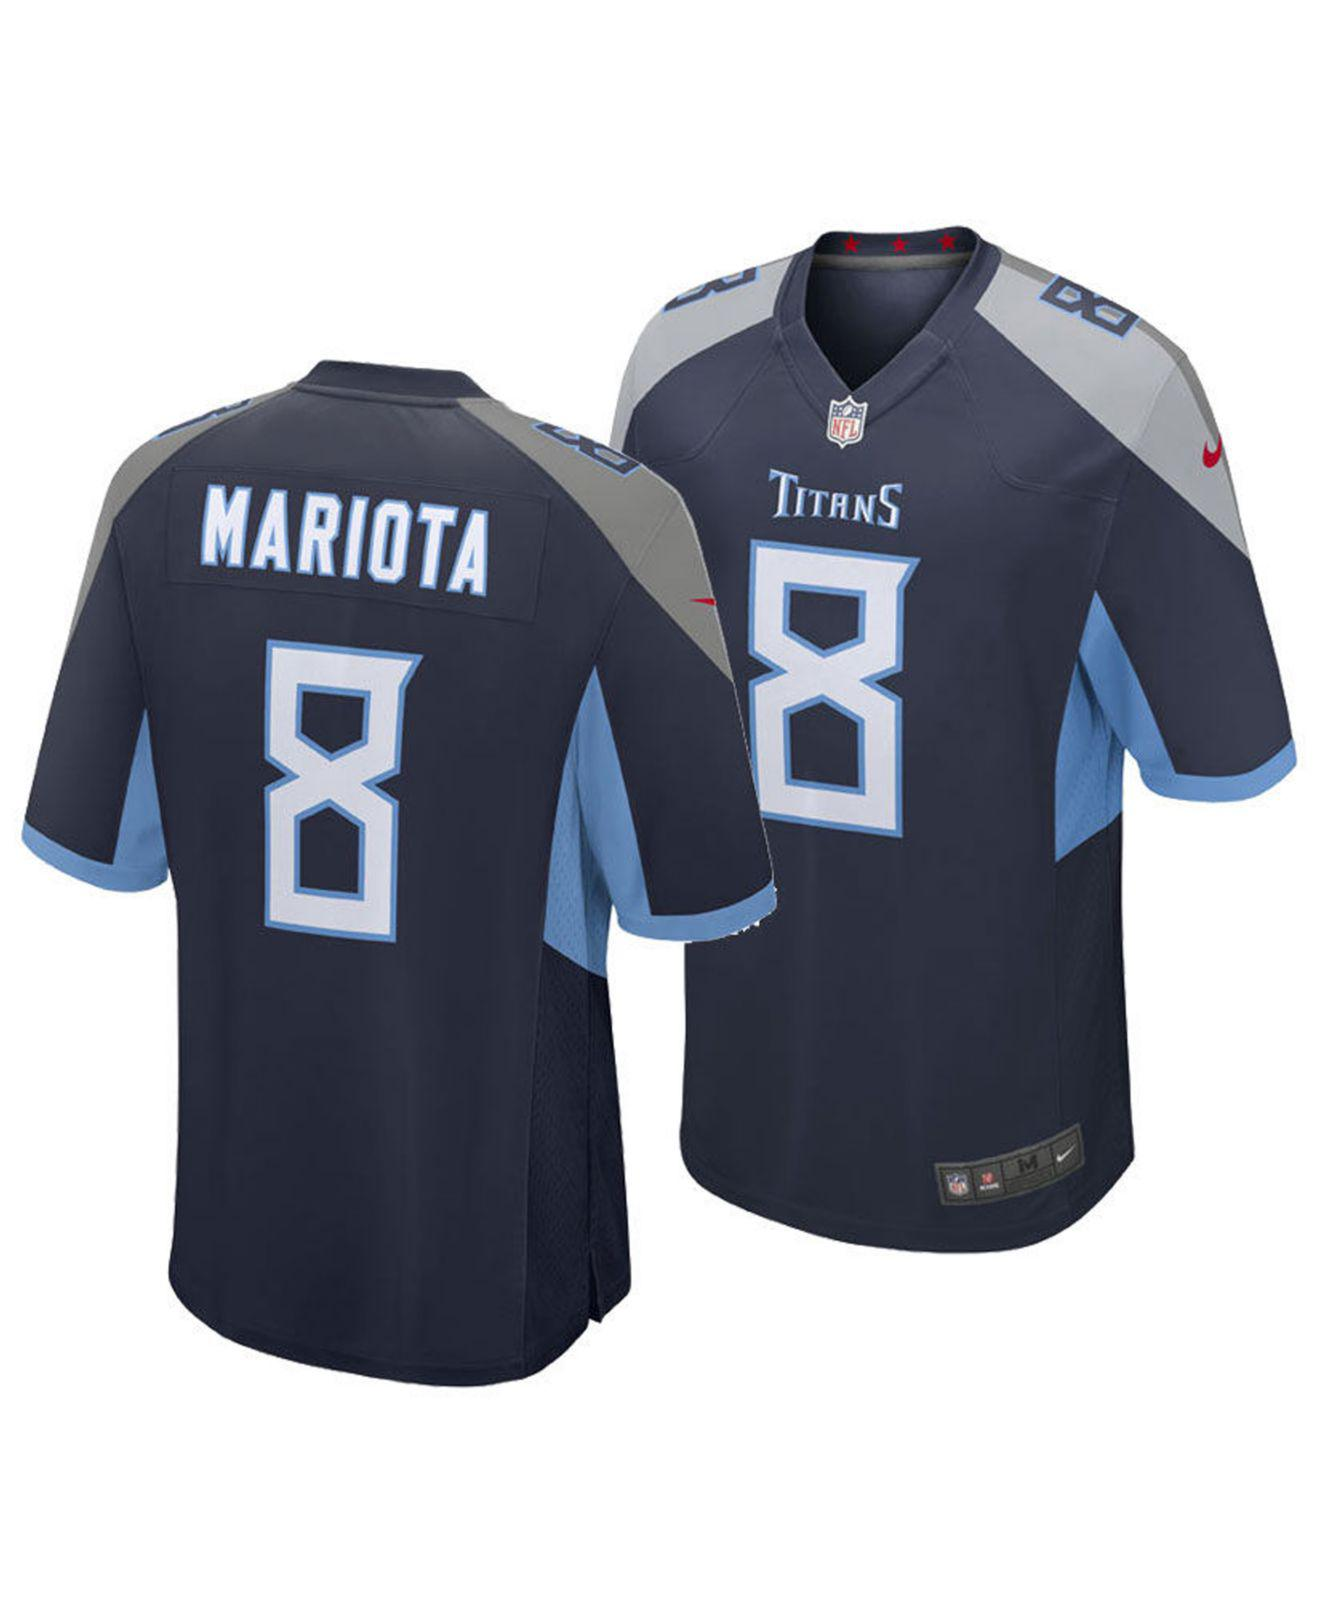 8a2f329e Lyst - Nike Marcus Mariota Tennessee Titans Game Jersey in Blue for Men